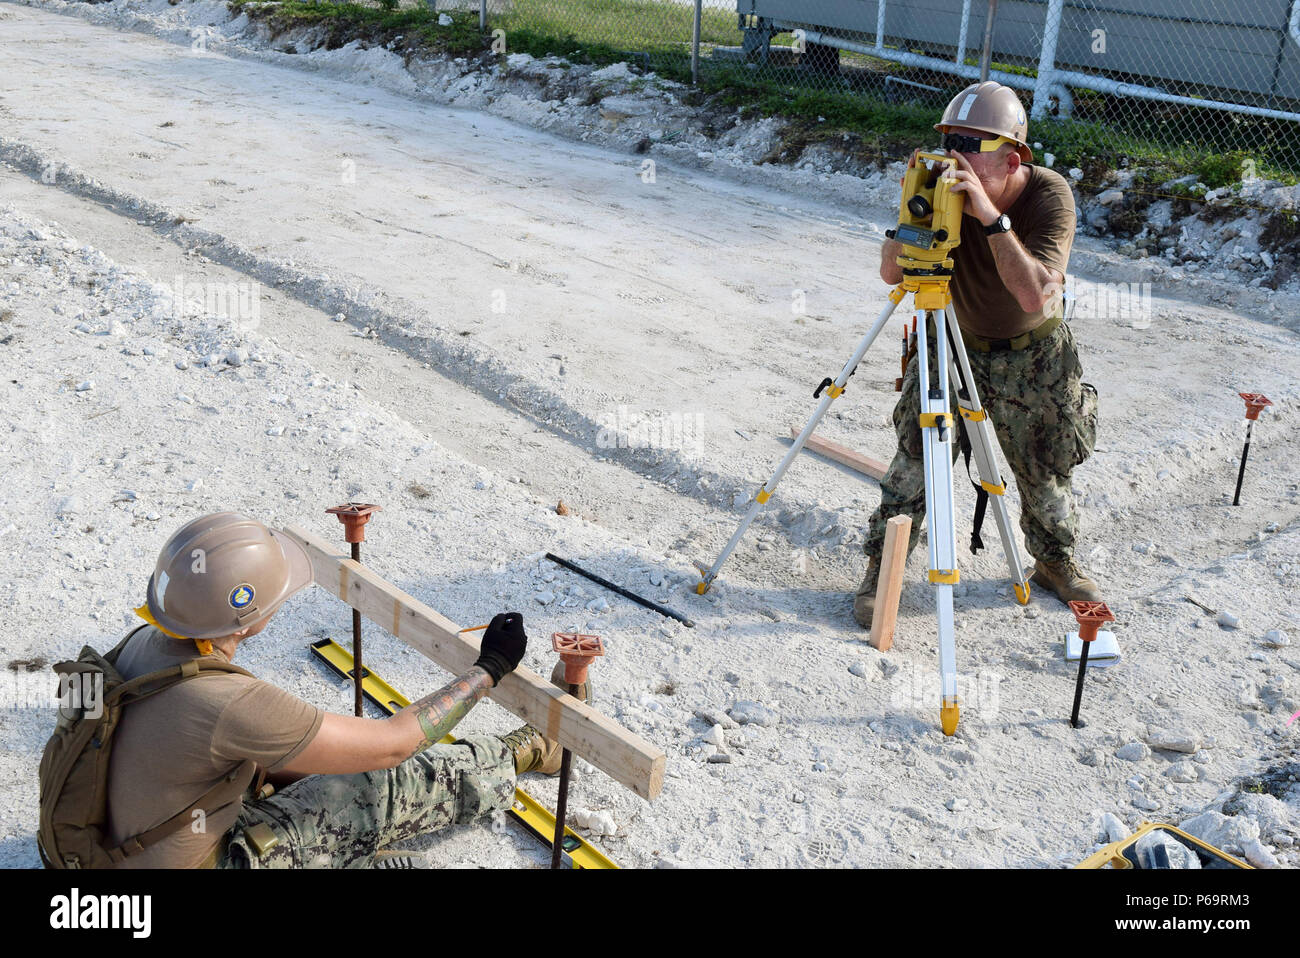 160506-N-OA861-004  DIEGO GARCIA (May 6, 2016) - Builder 1st Class Charles Durnell (right), assigned to Naval Mobile Construction Battalion (NMCB) 4, shoots measurements through a Transit Level with Steelworker 2nd Class Kaylynn Barajas (left) in Diego Garcia, May 6.  Using the transit level on the batter boards will provide the exact corner locations for placing and squaring off the formwork for the Gas Cylinder storage concrete pad.  (U.S. Navy photo by Builder 3rd Class Xavier Spencer/Released) - Stock Image